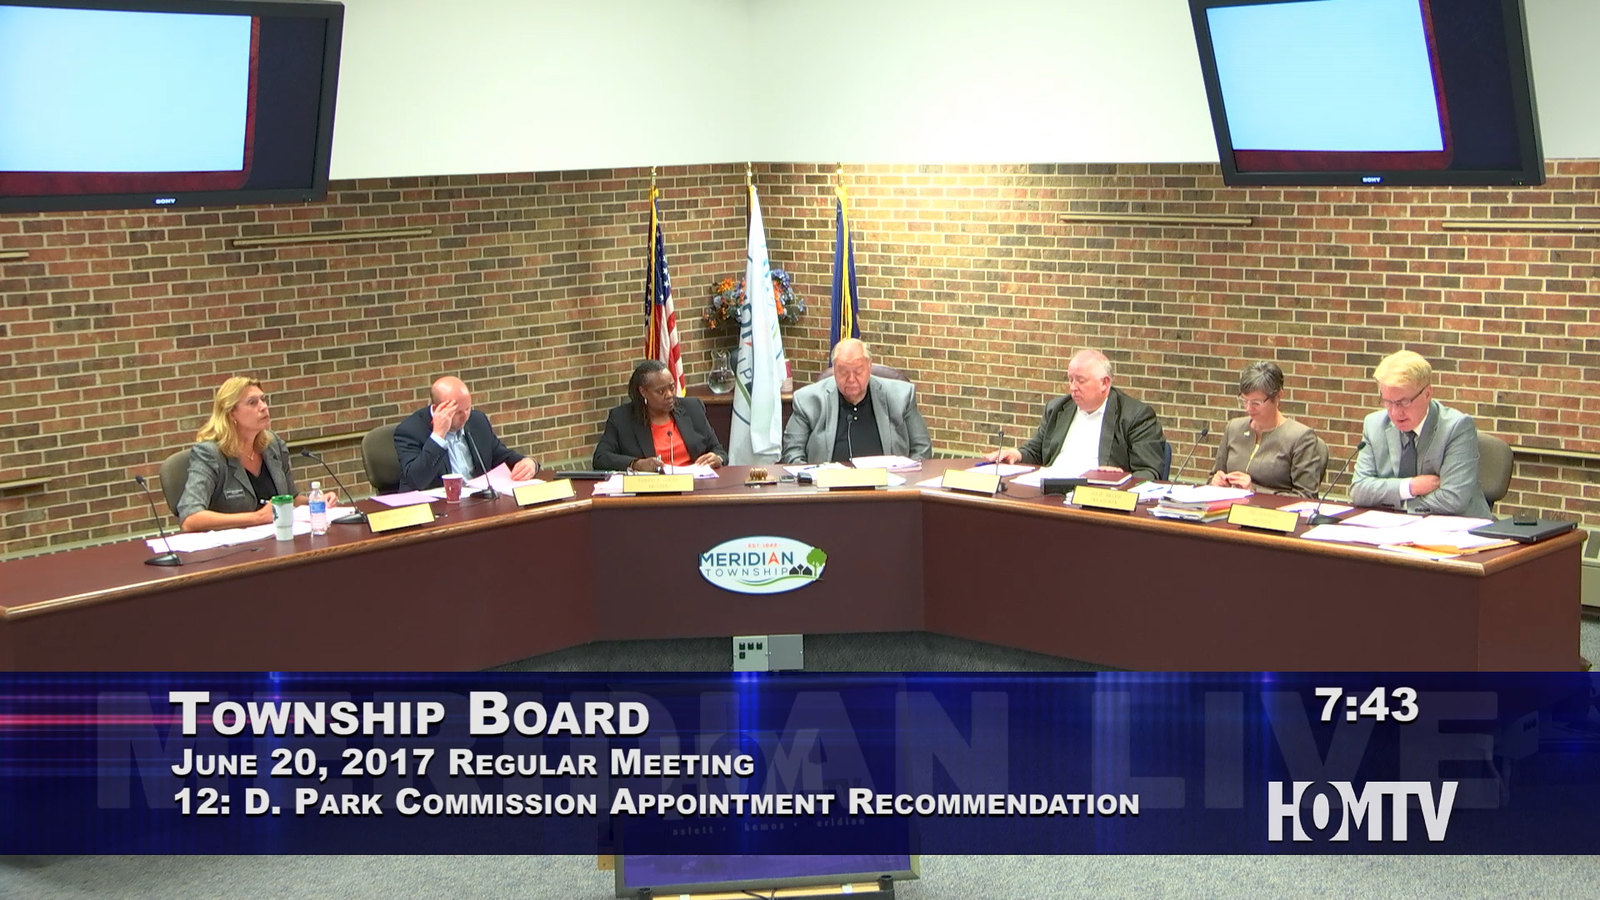 Township Board Appoints New Park Commissioner